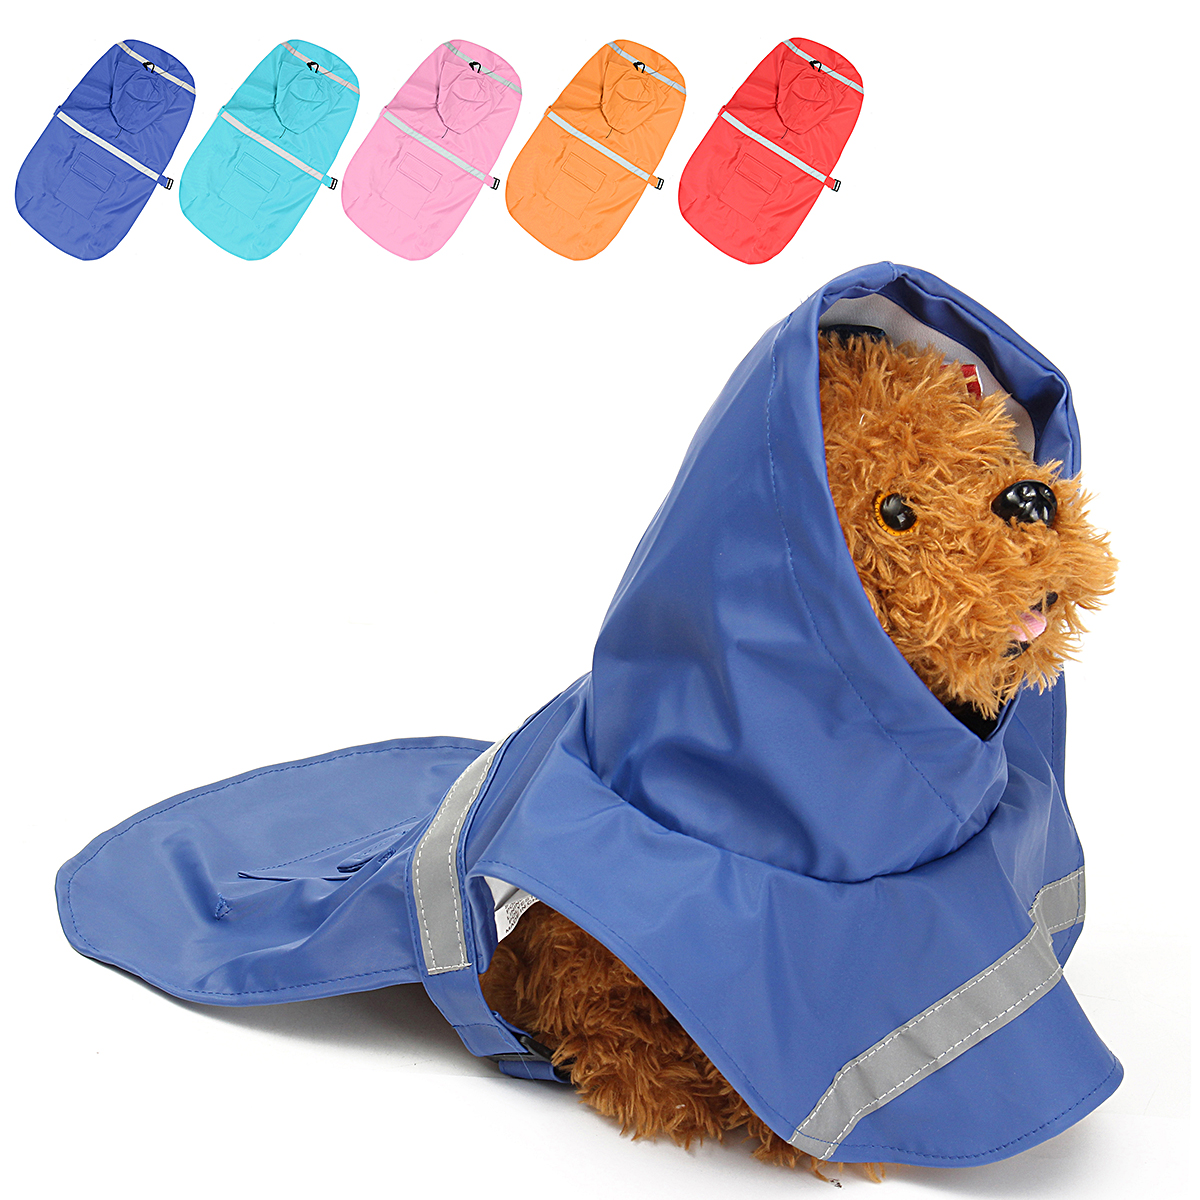 Waterproof Dog Raincoat Small Pet Clothes Hoodie Jacket Outdoor with Reflective Strip For Small Dog